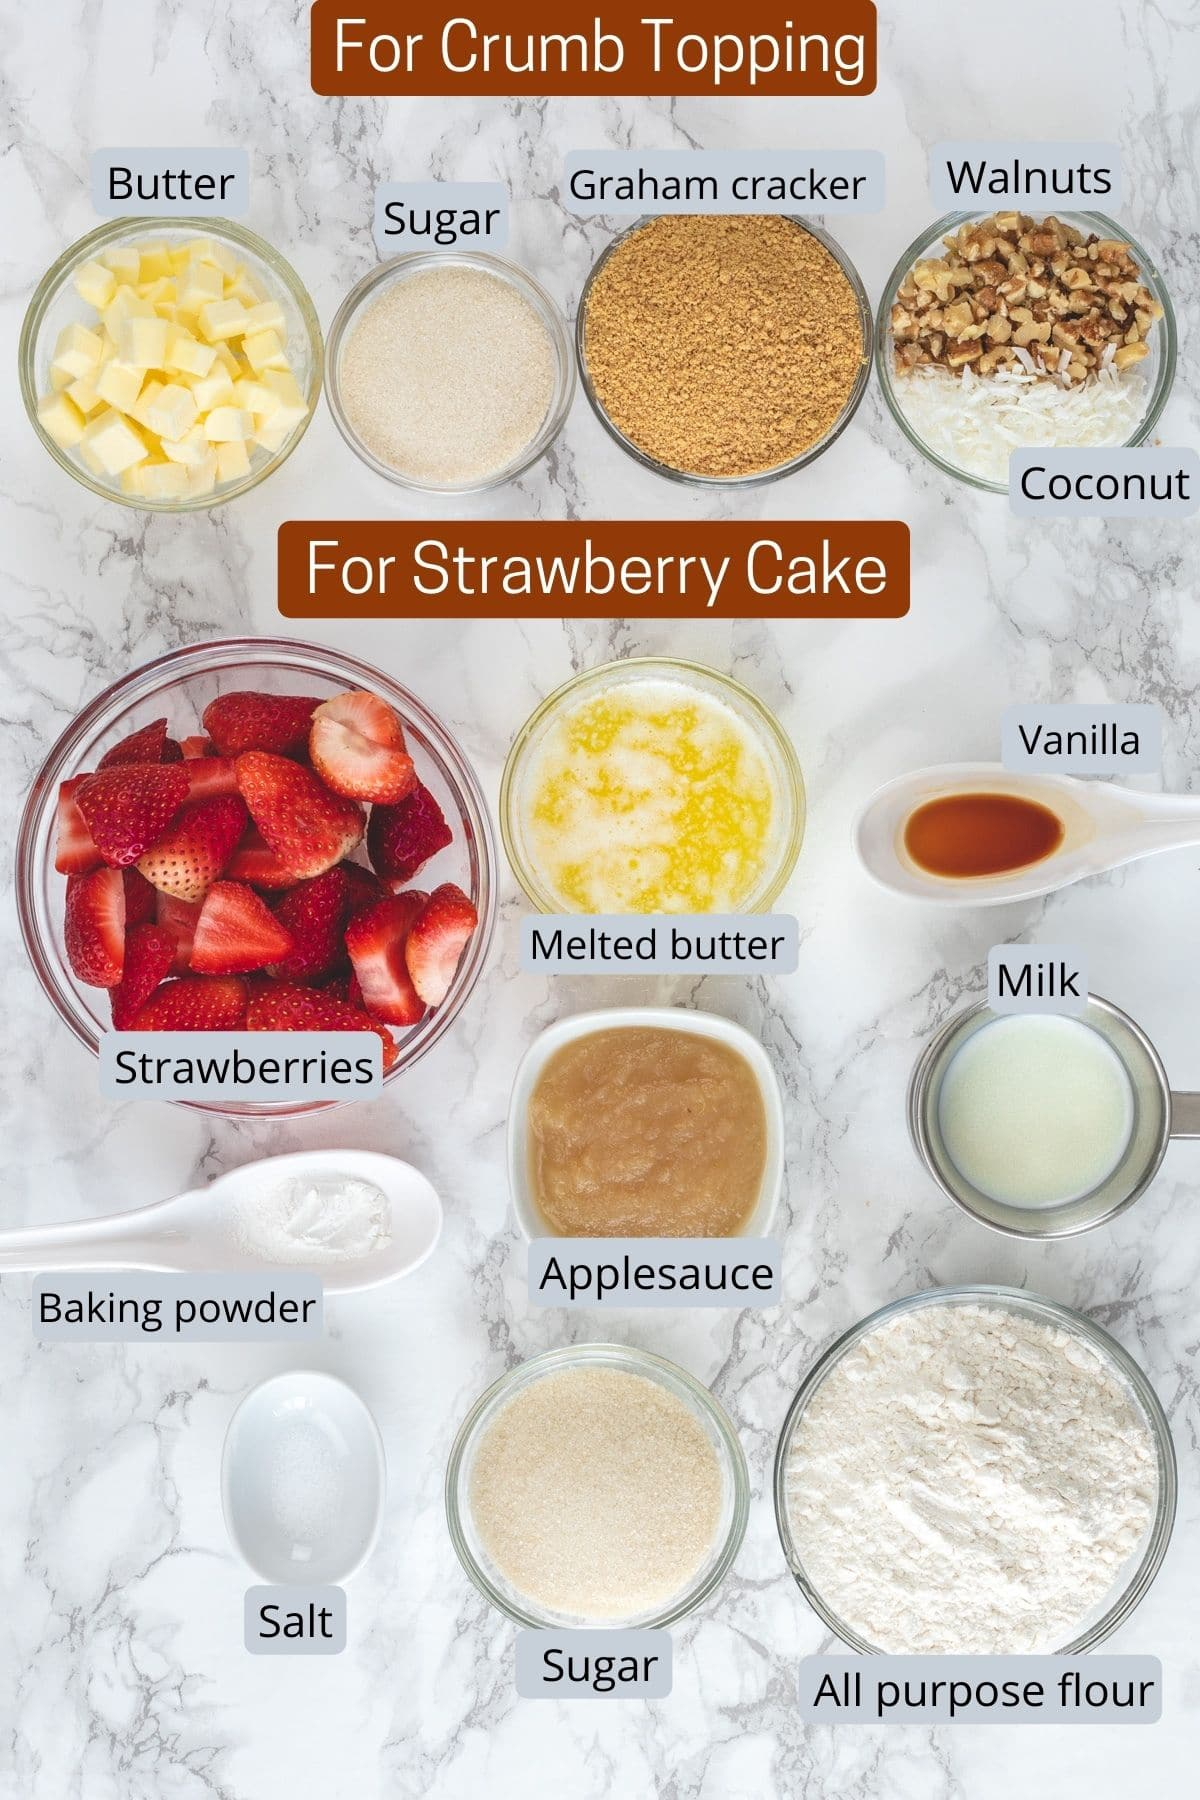 Ingredients used for making eggless strawberry cake in individual bowls.